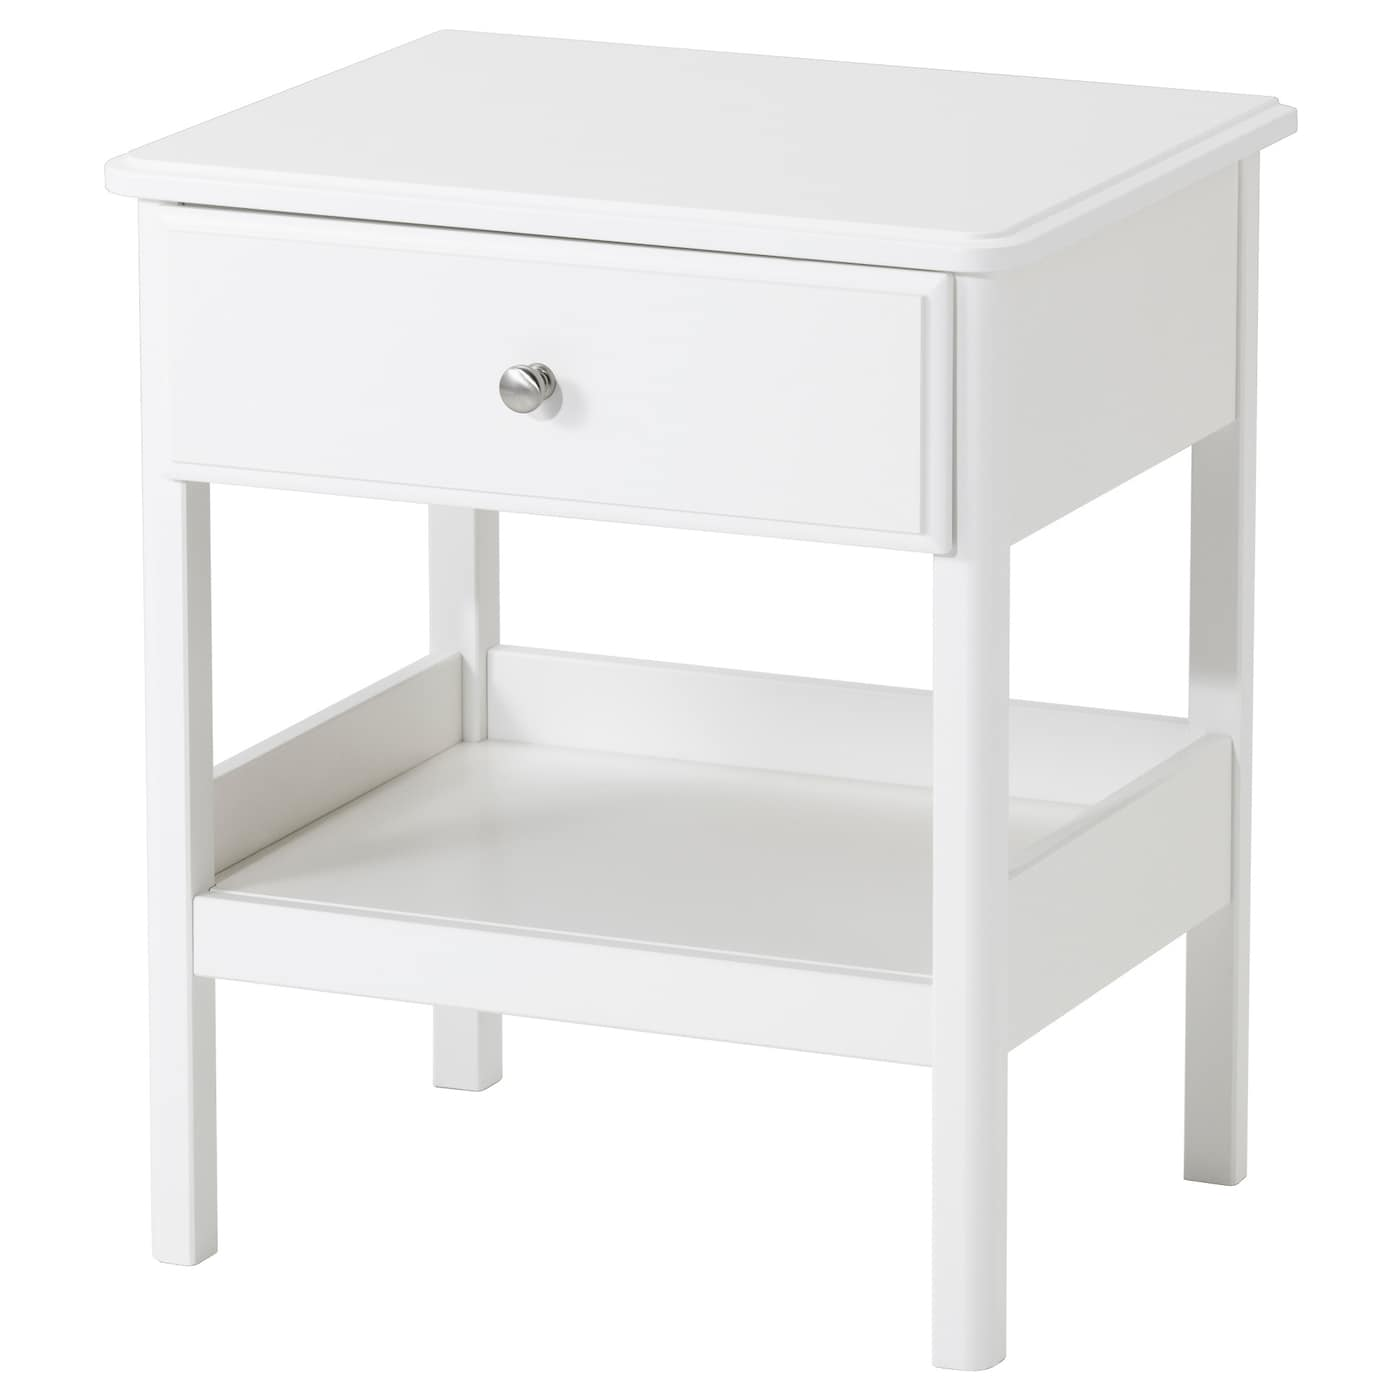 tyssedal bedside table white 51x40 cm ikea. Black Bedroom Furniture Sets. Home Design Ideas